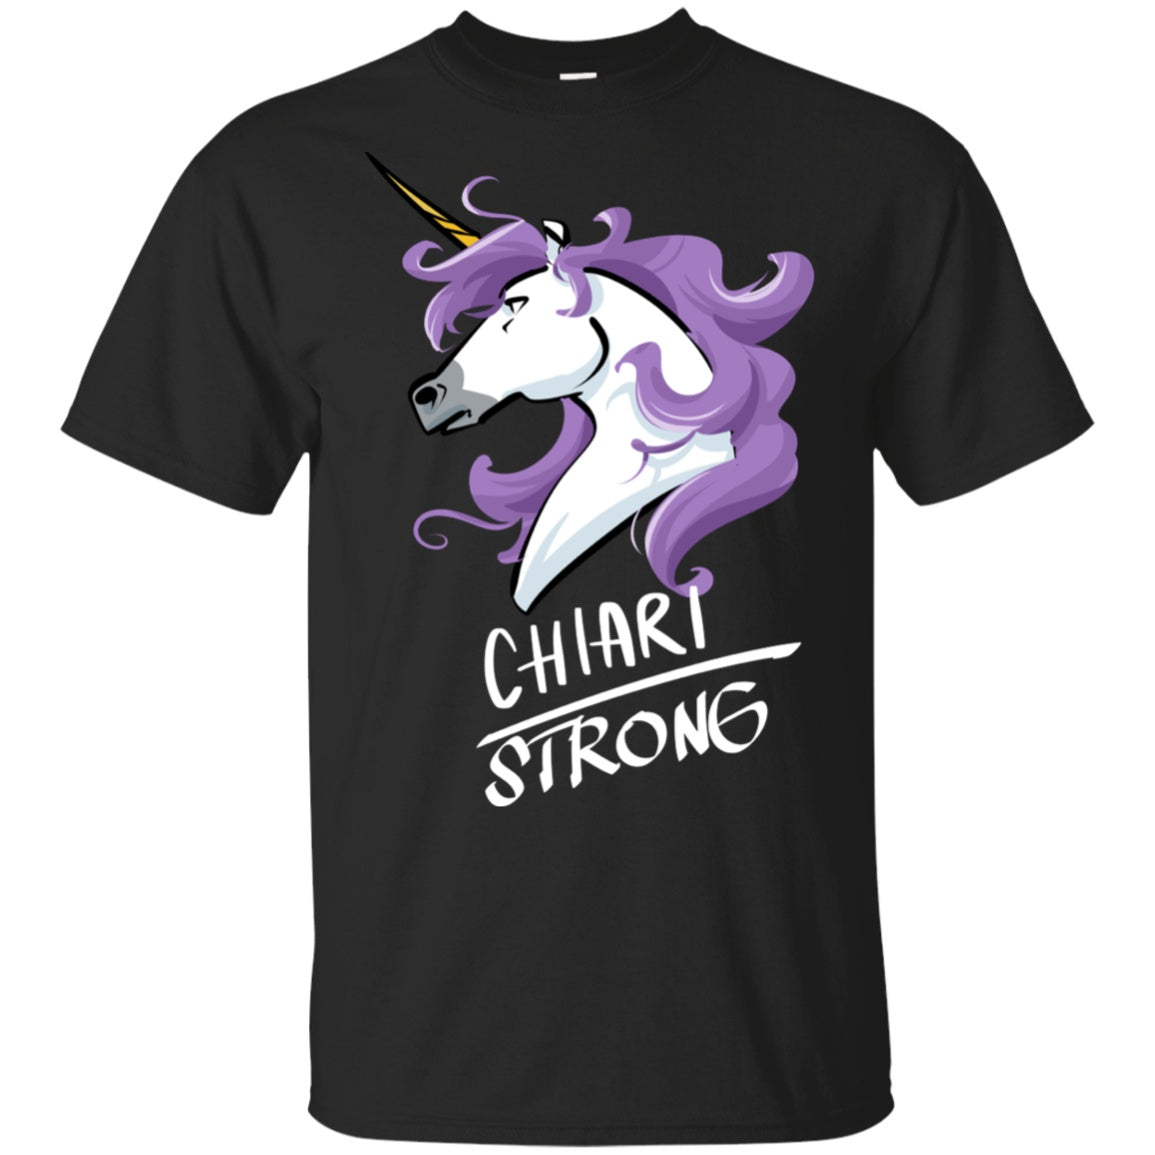 Chiari Strong Unicorn Cotton Unisex T-Shirt - The Unchargeables